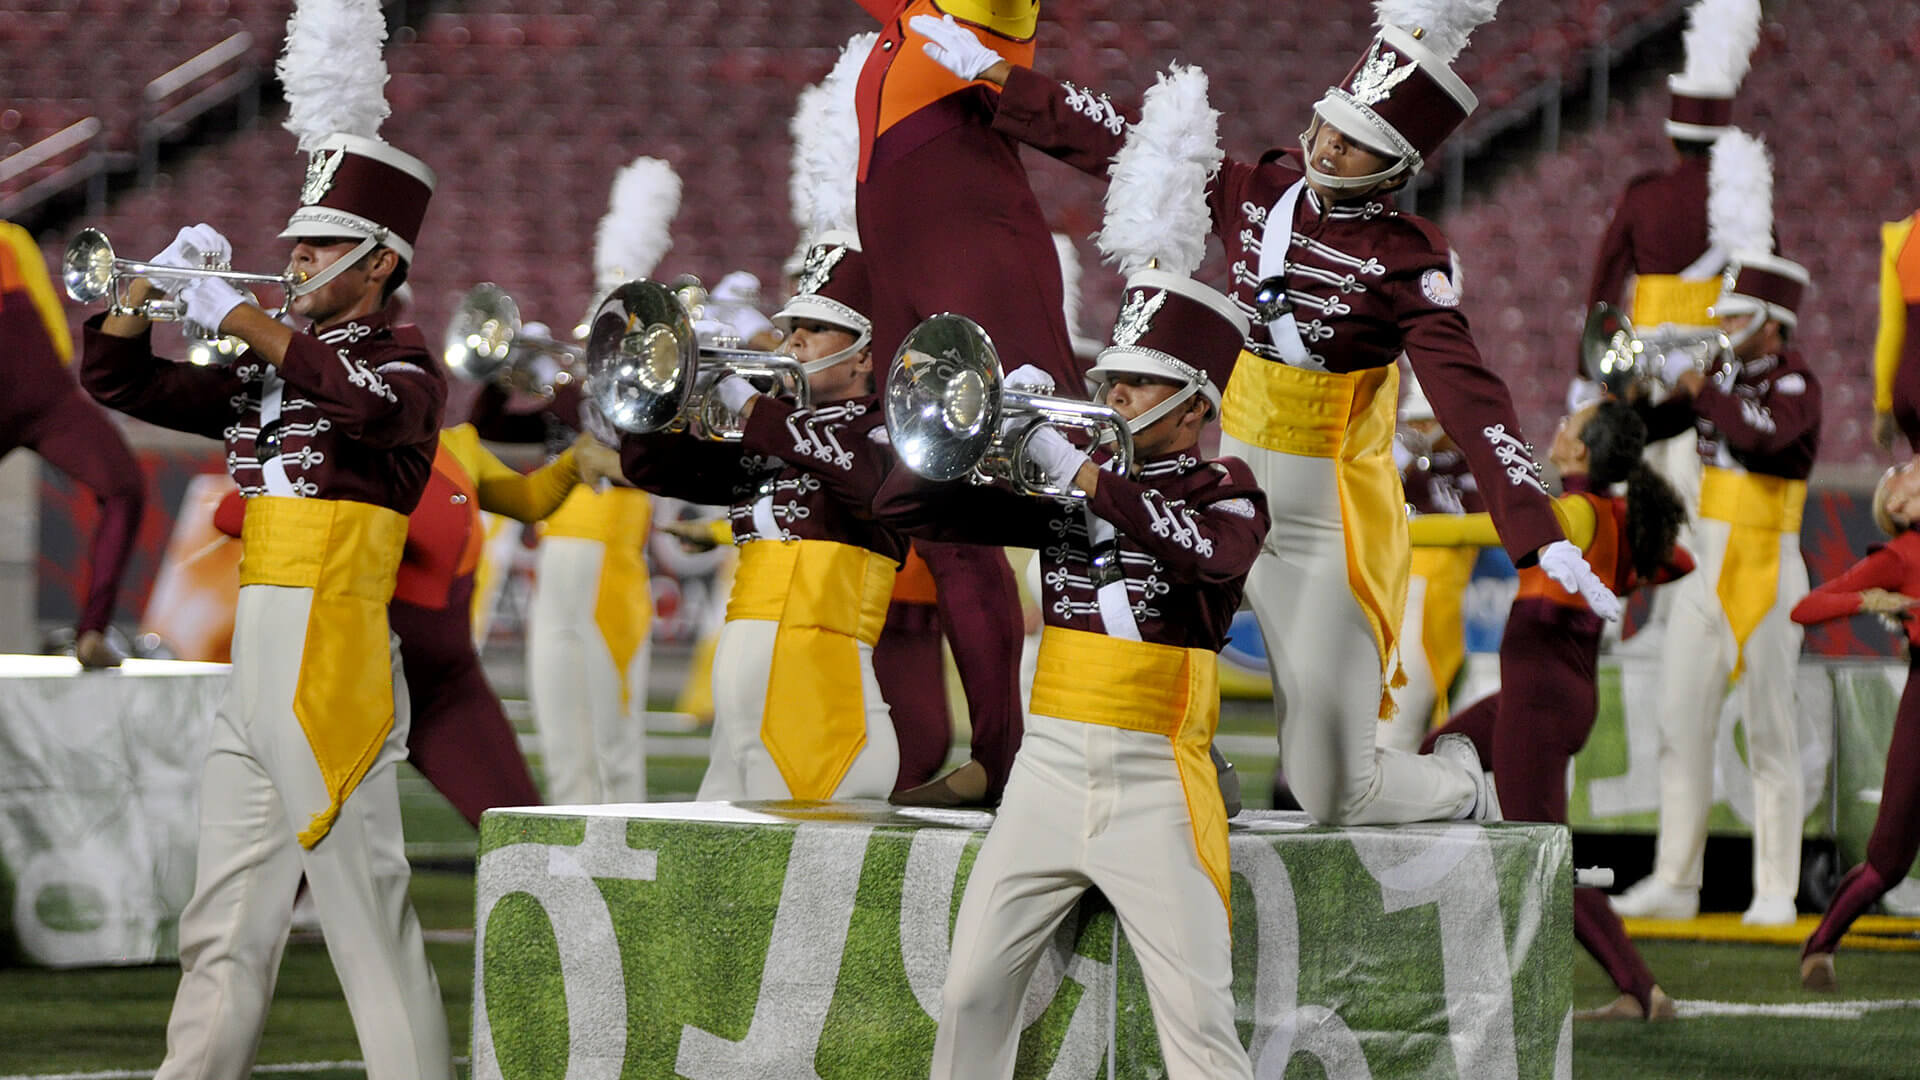 Cadets stay on top during rainy night in Louisville